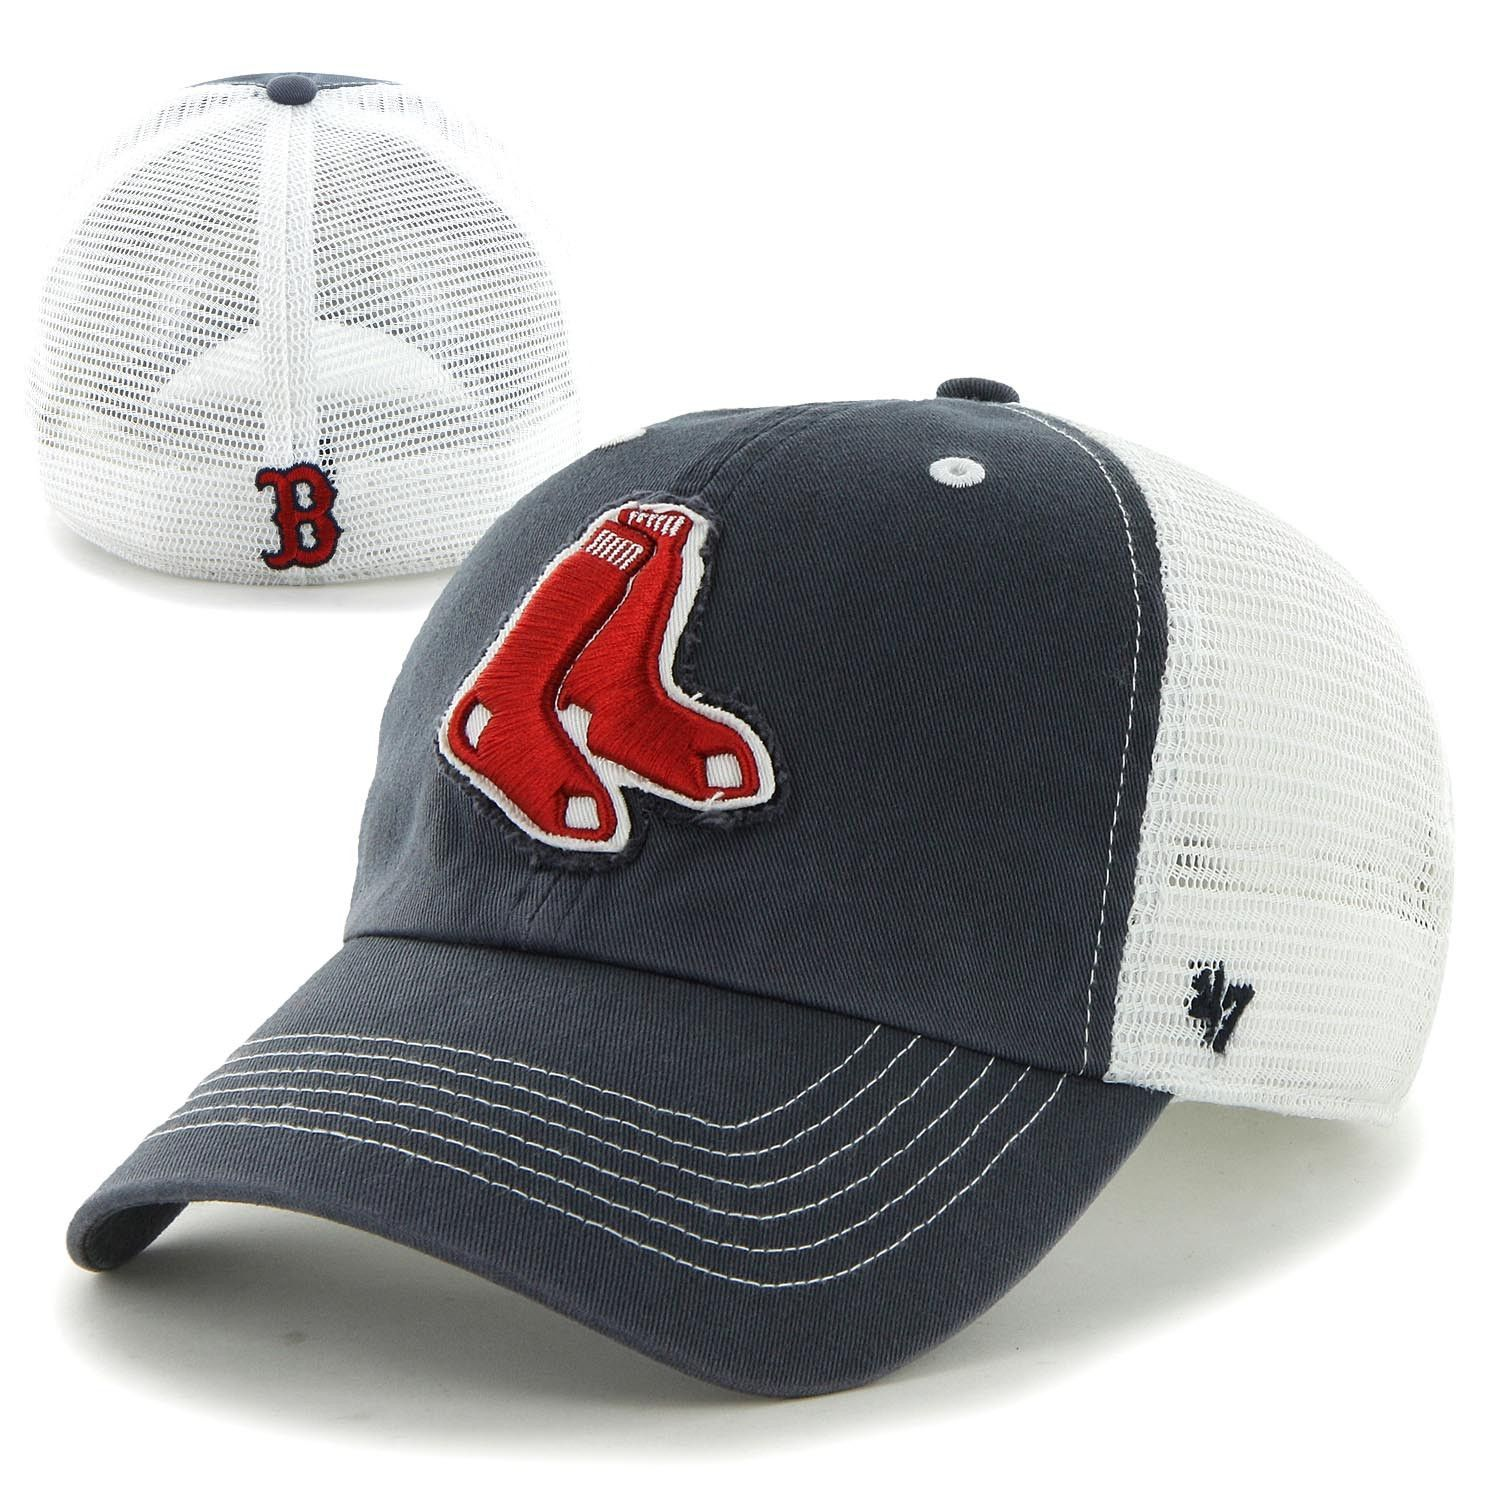 20d49c4aeab52 47 Franchise - Stretch Fit - Blue Mountain - Navy - 2 Sox Red Sox Hat